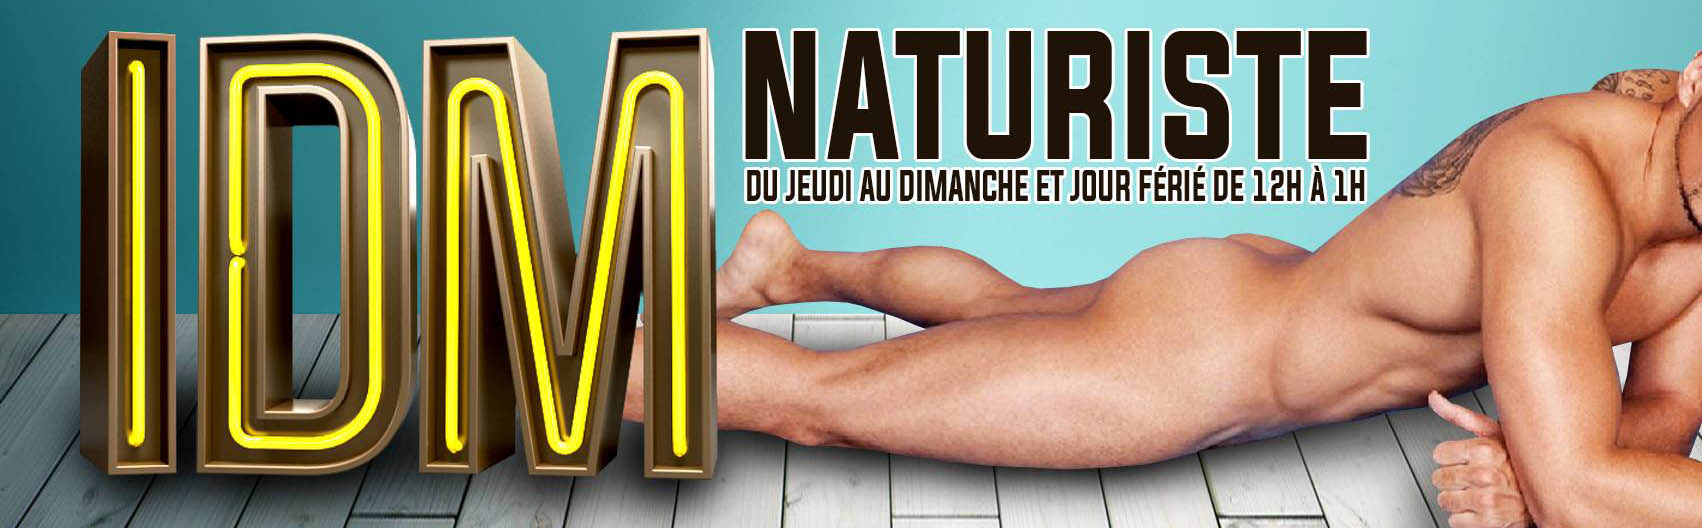 IDM SAUNA - NAKED EVENT